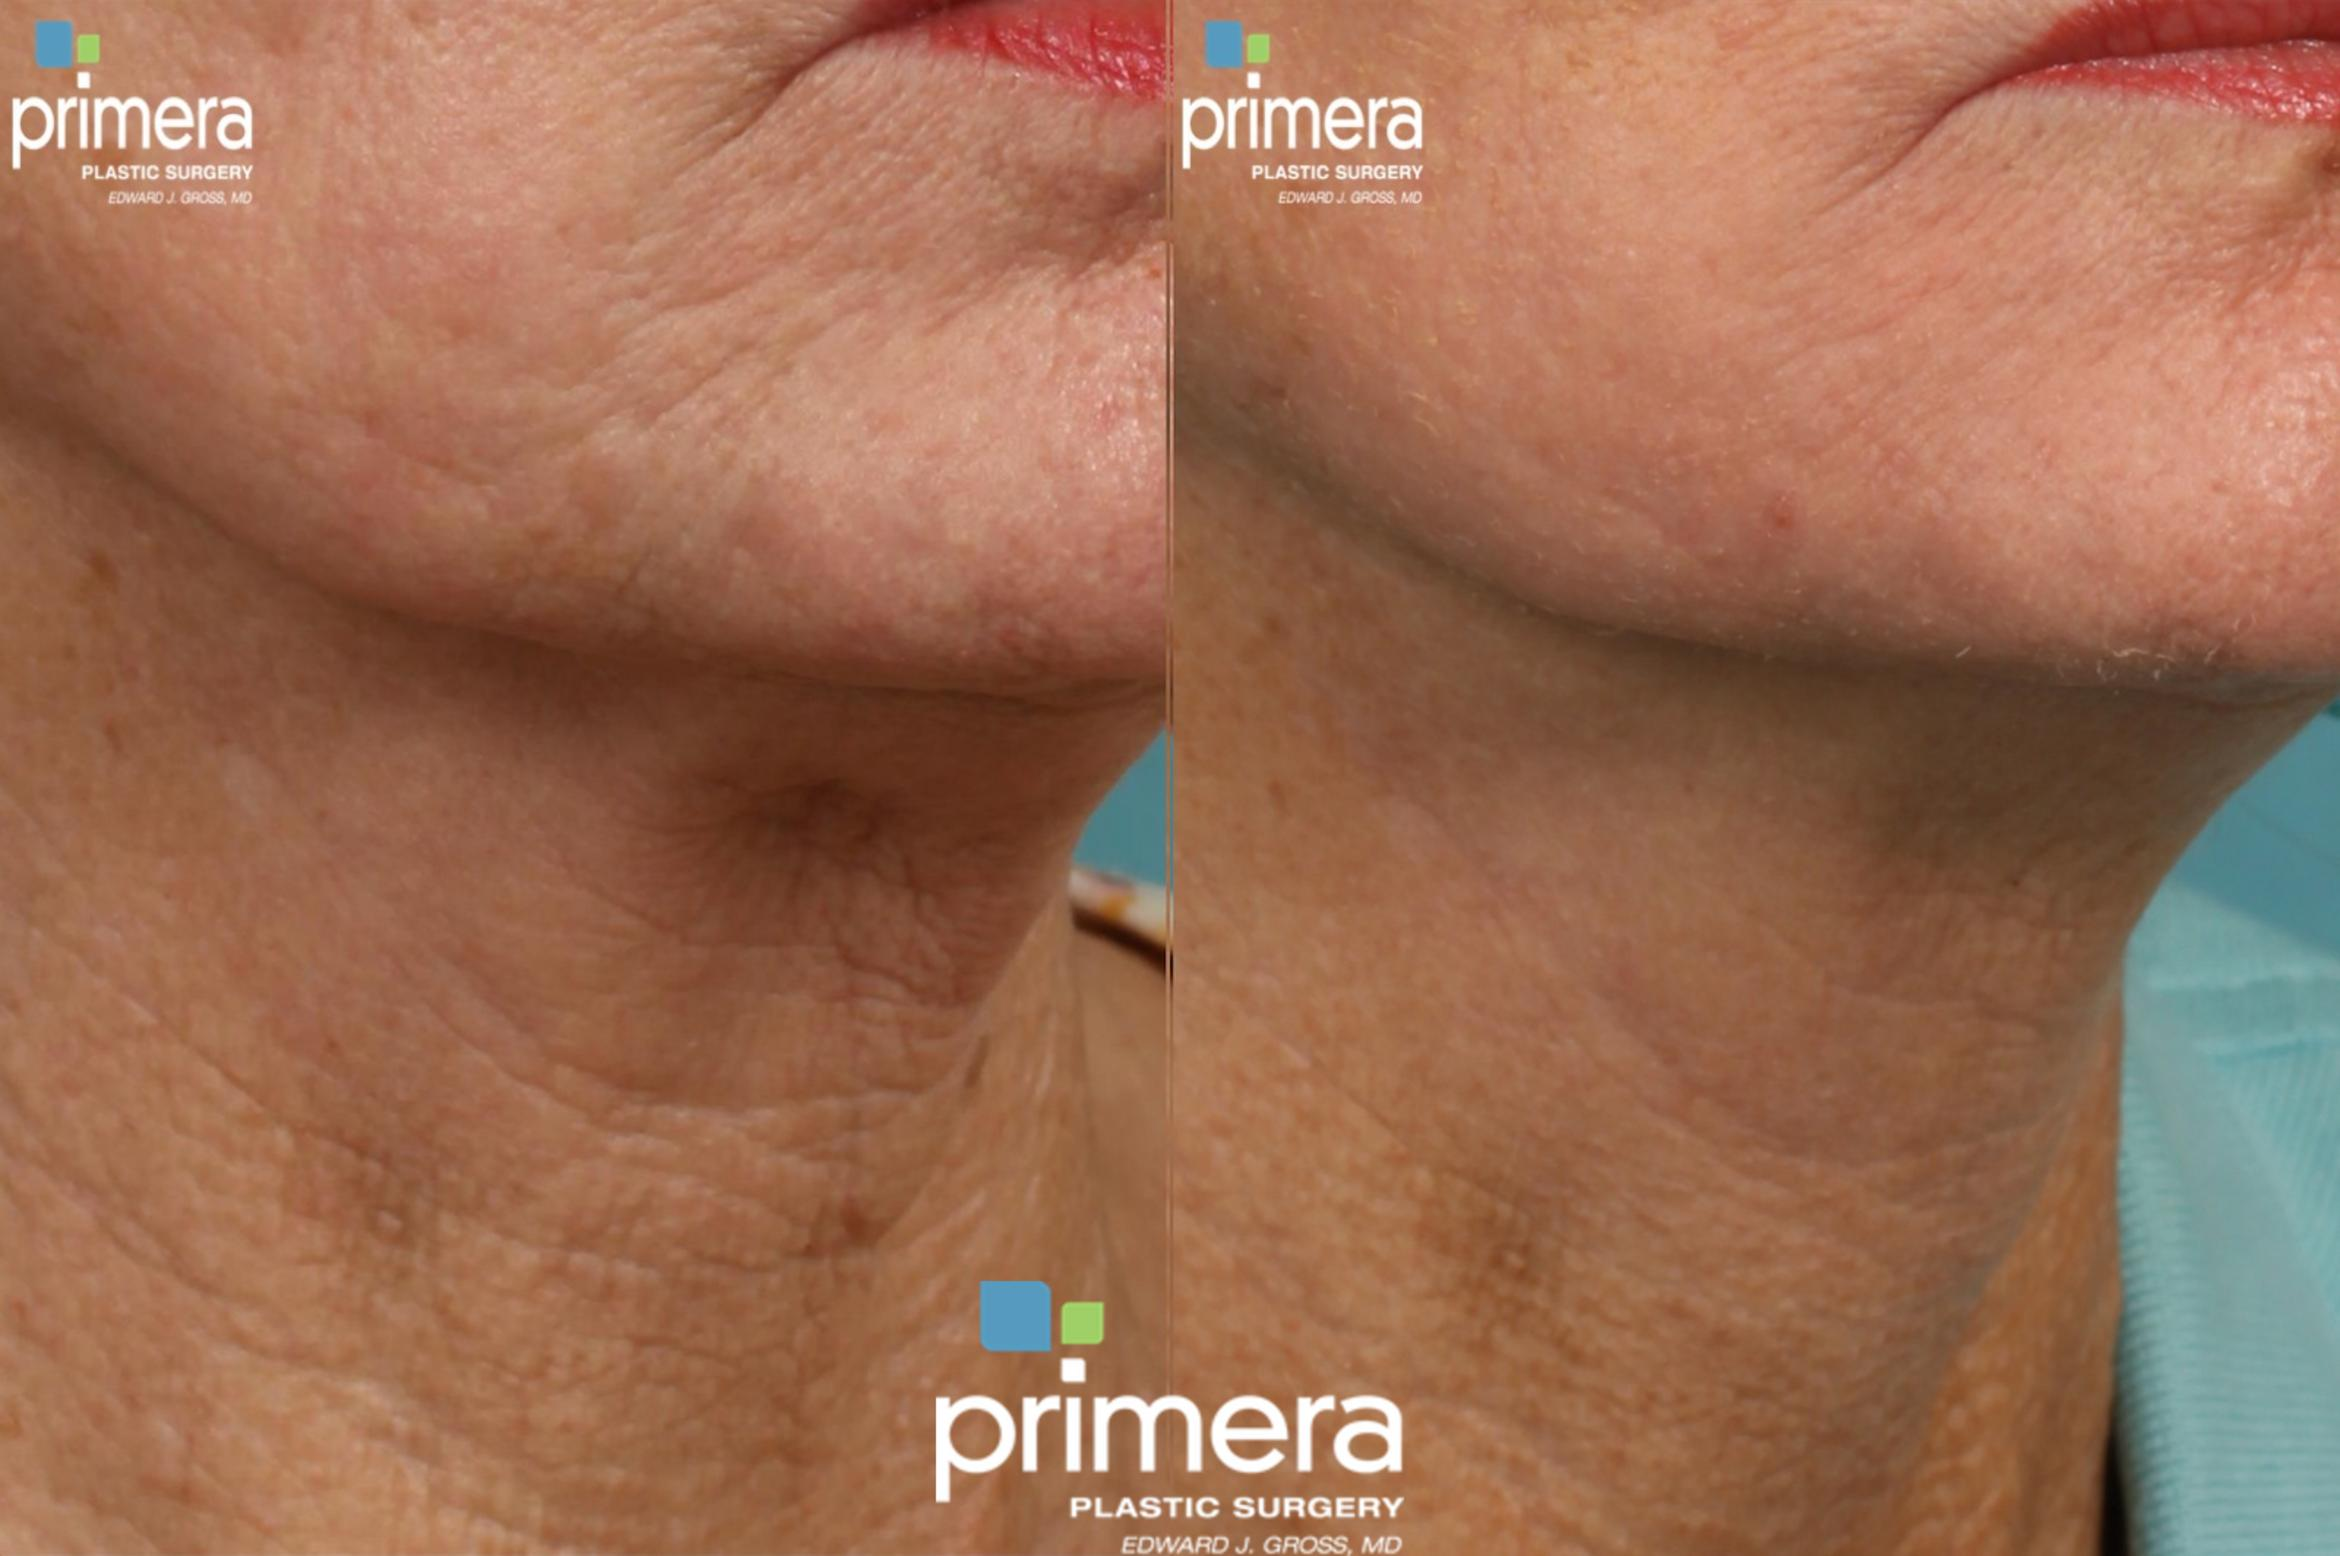 Ultherapy® Before & After Photo | Orlando, Florida | Primera Plastic Surgery